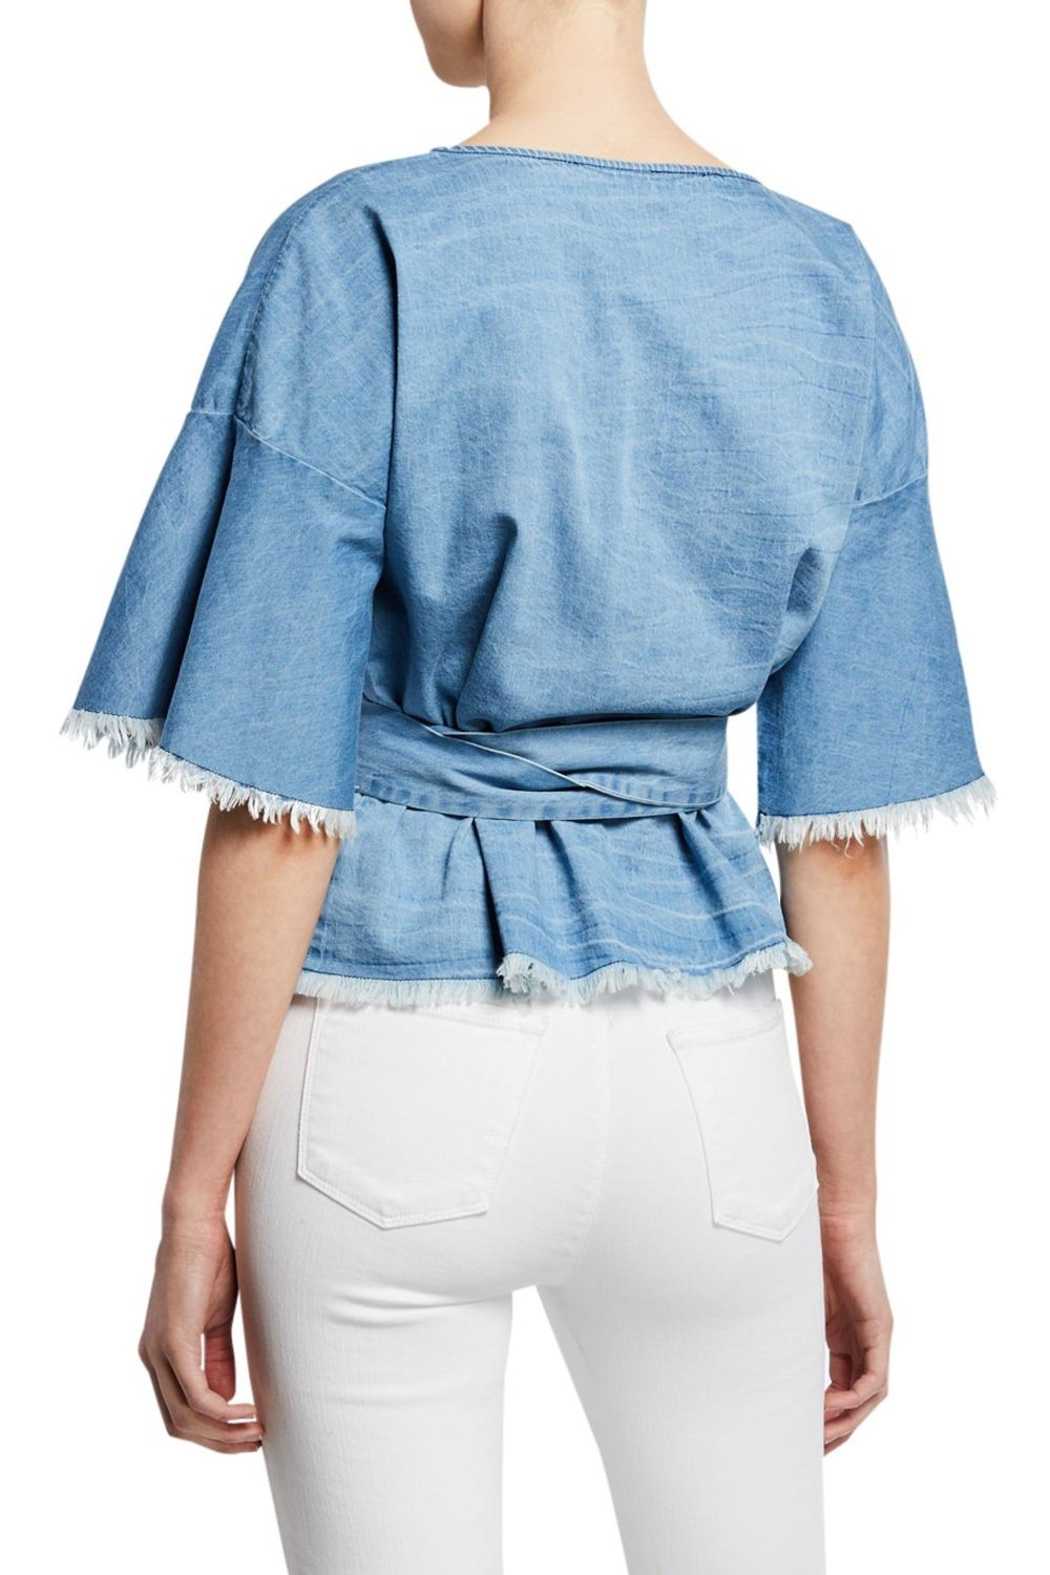 Cupcakes & Cashmere Petunia Chambray Blouse - Front Full Image